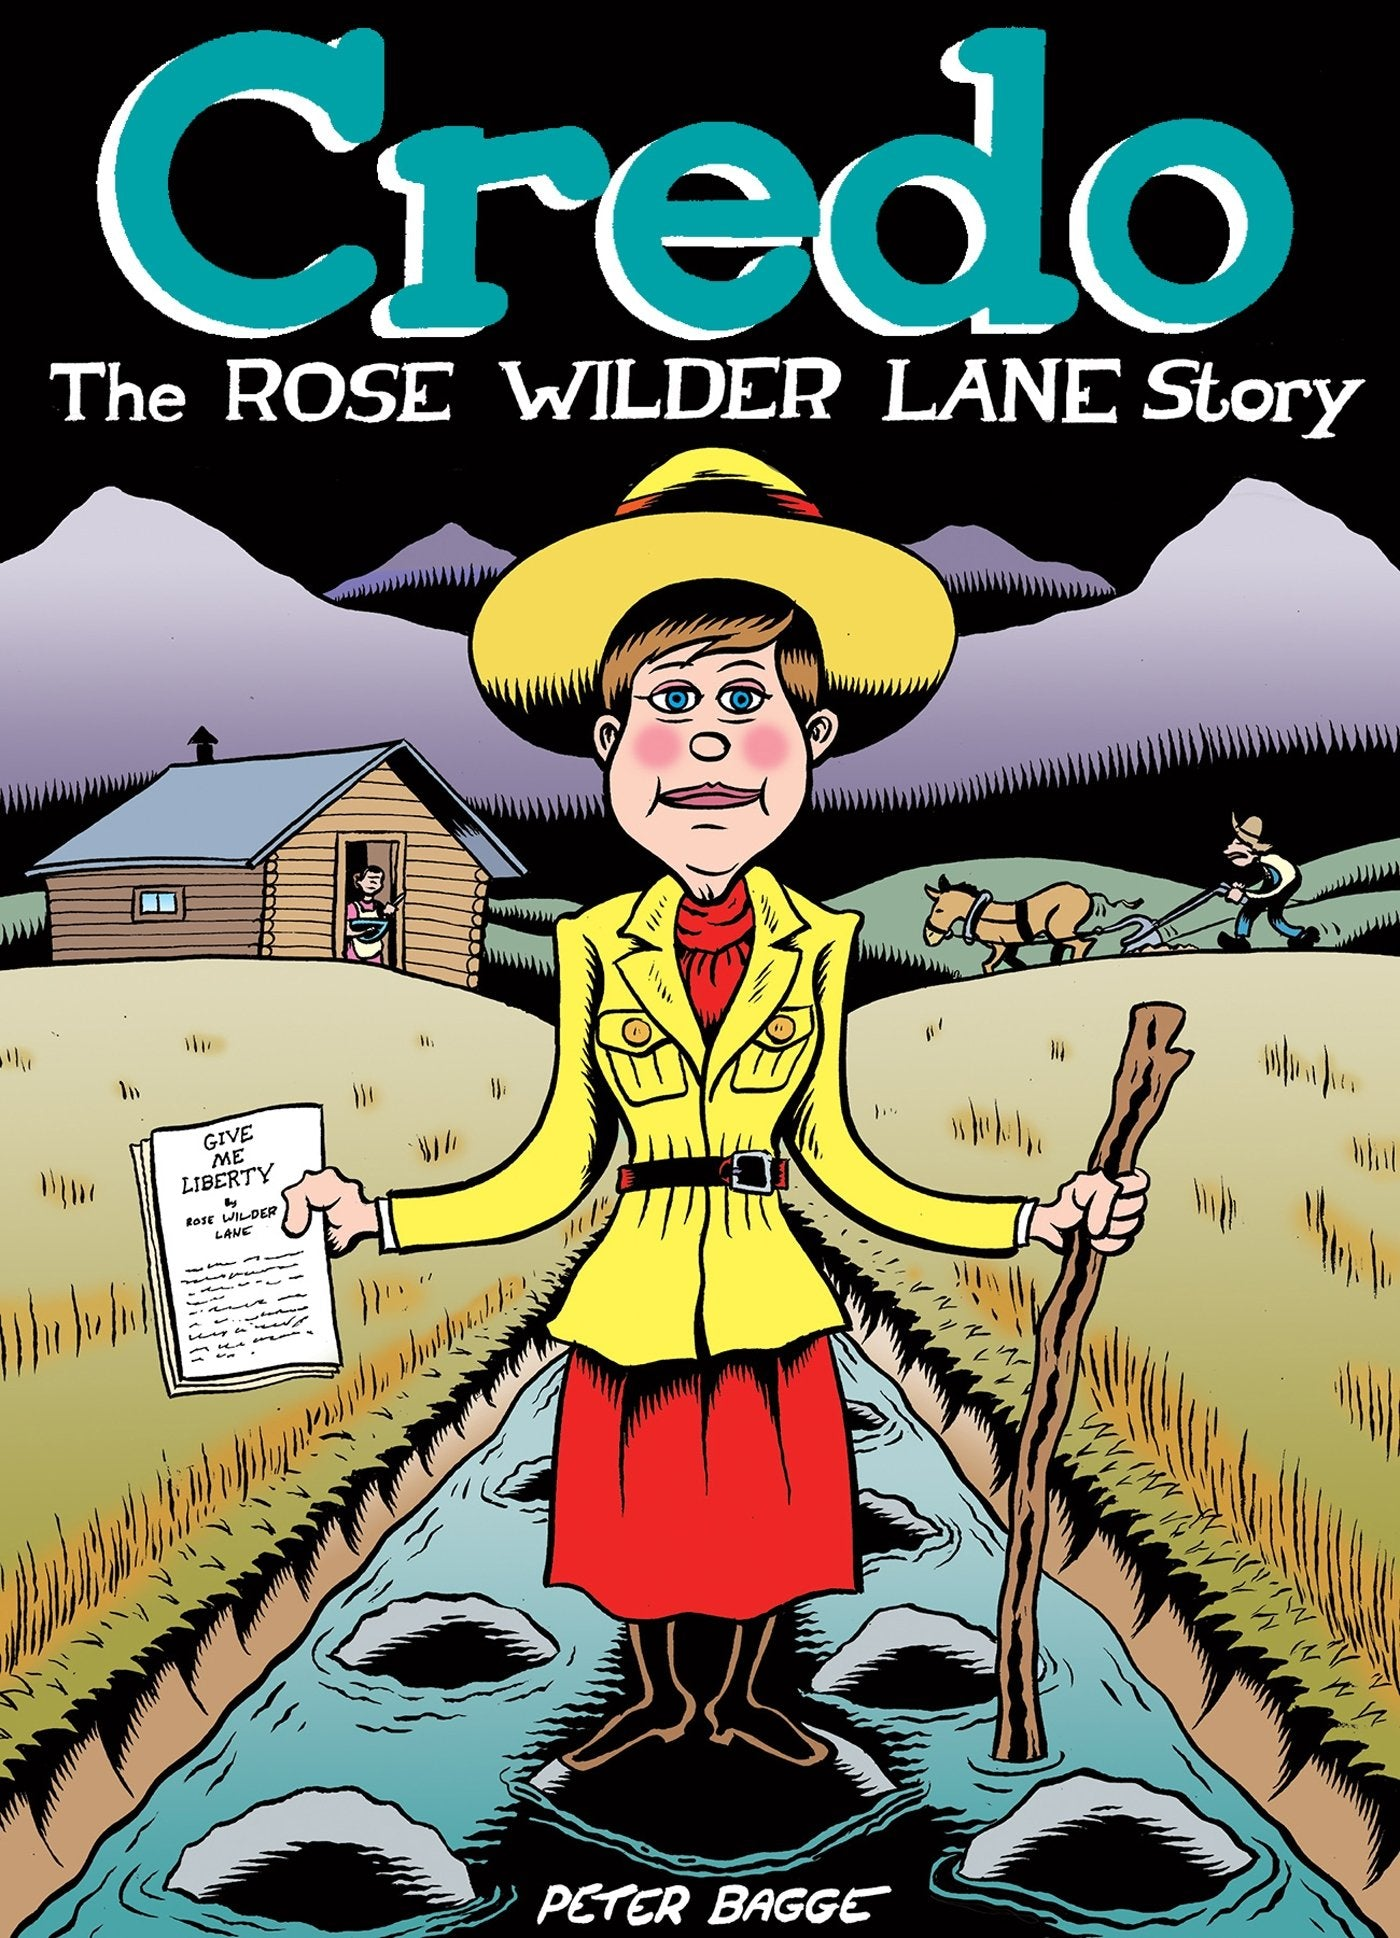 Credo: The Rose Wilder Lane Story by Peter Bagge